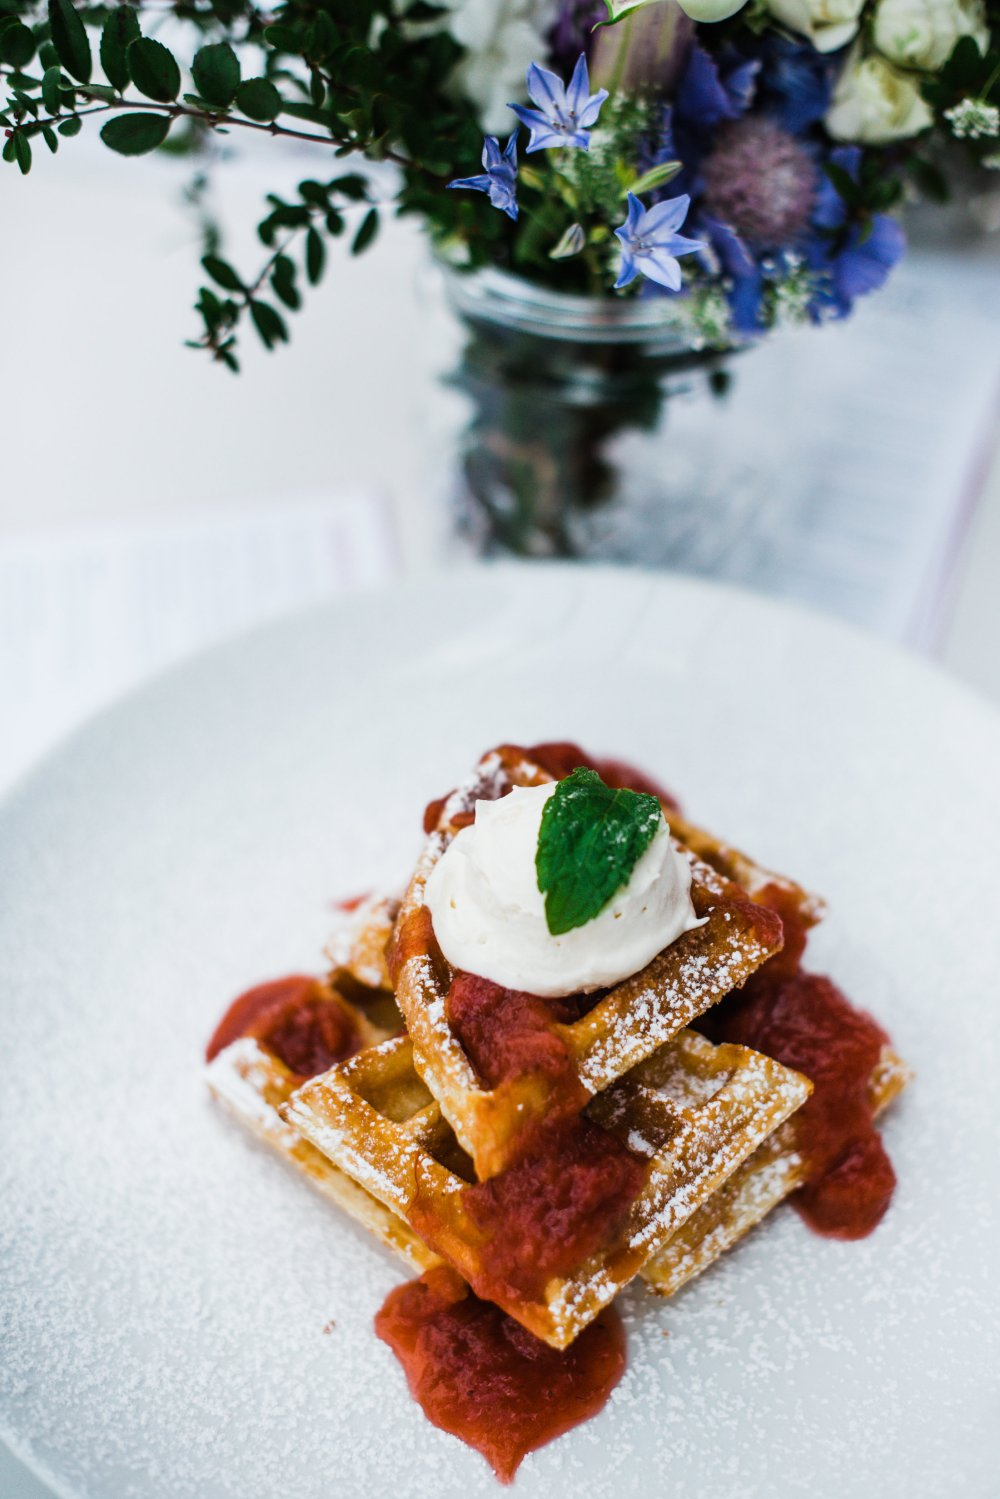 Central Social Hall Jasper Avenue Brunch Menu Belgian Waffles With Fruit Compote Chantilly Cream